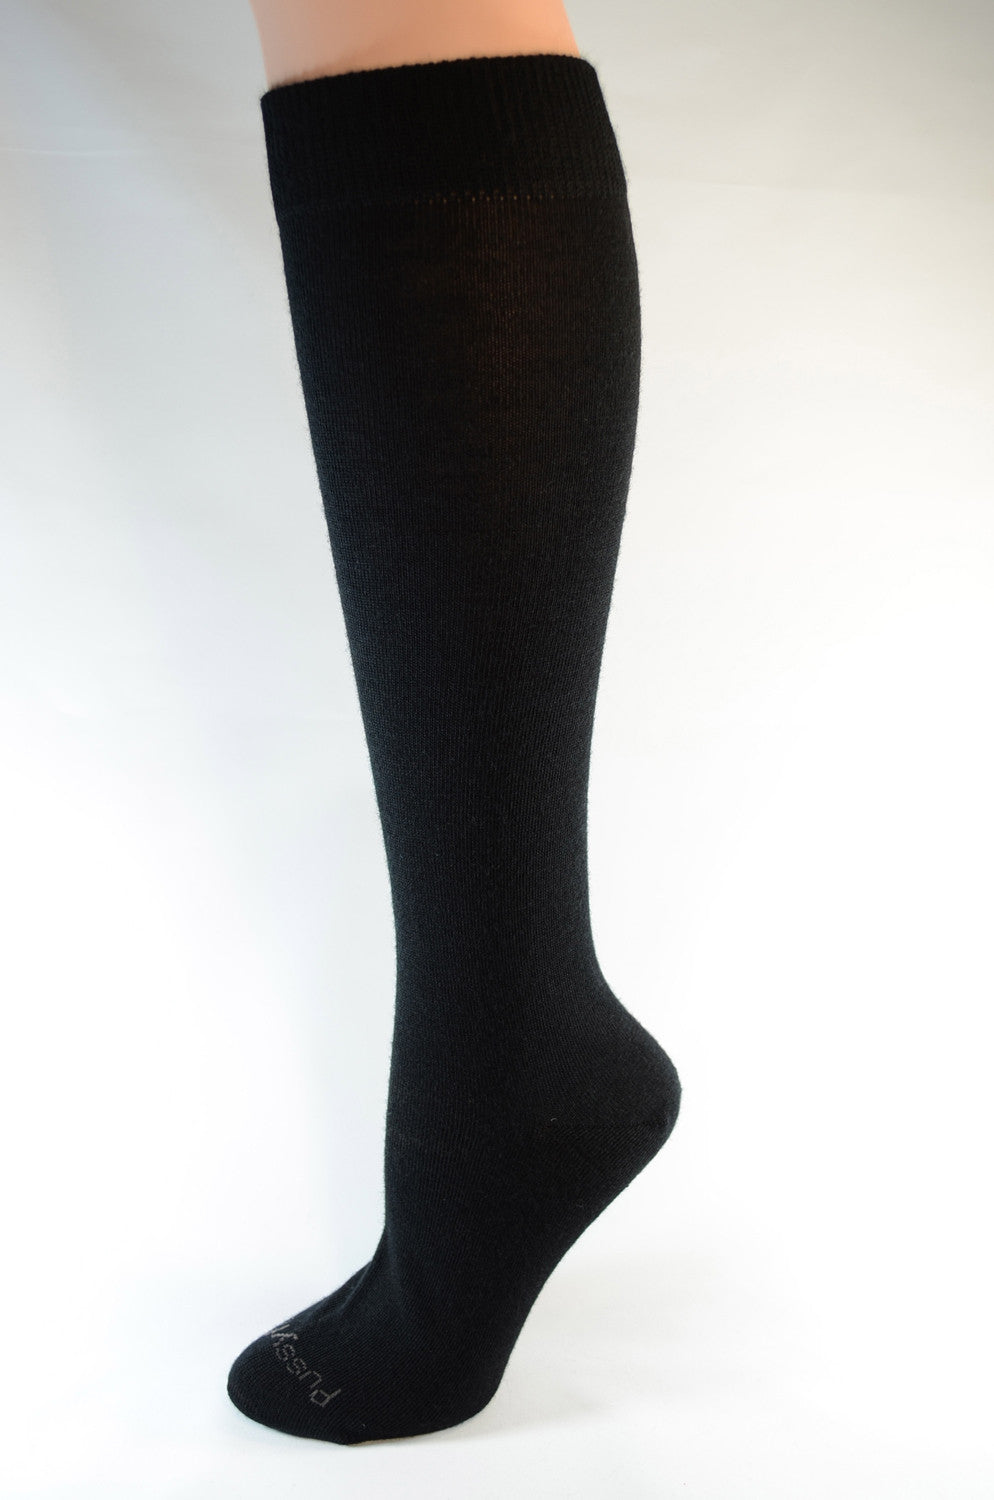 b153ac4e5 Pussyfoot Women's Merino Knee High - Black